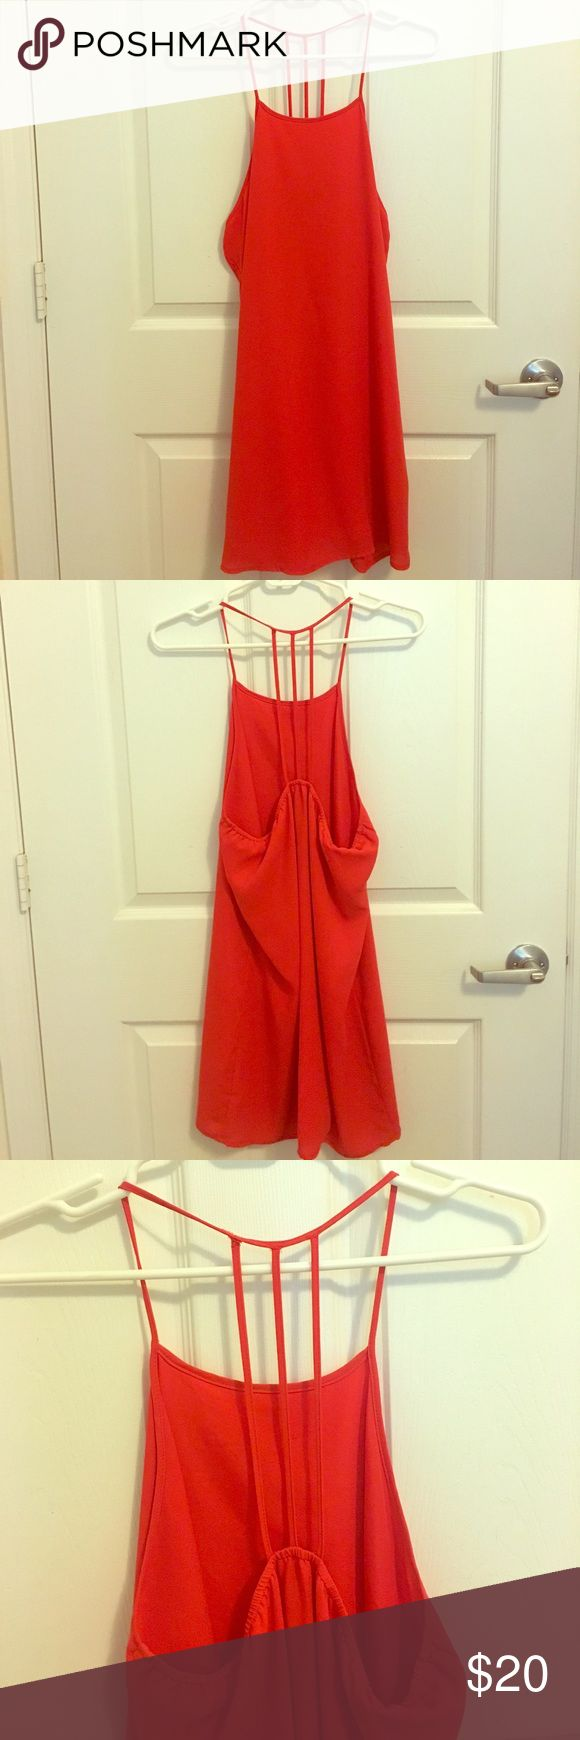 Red mini dress with back detail Red mini dress with strap details. Very good condition. Forever 21 Dresses Mini